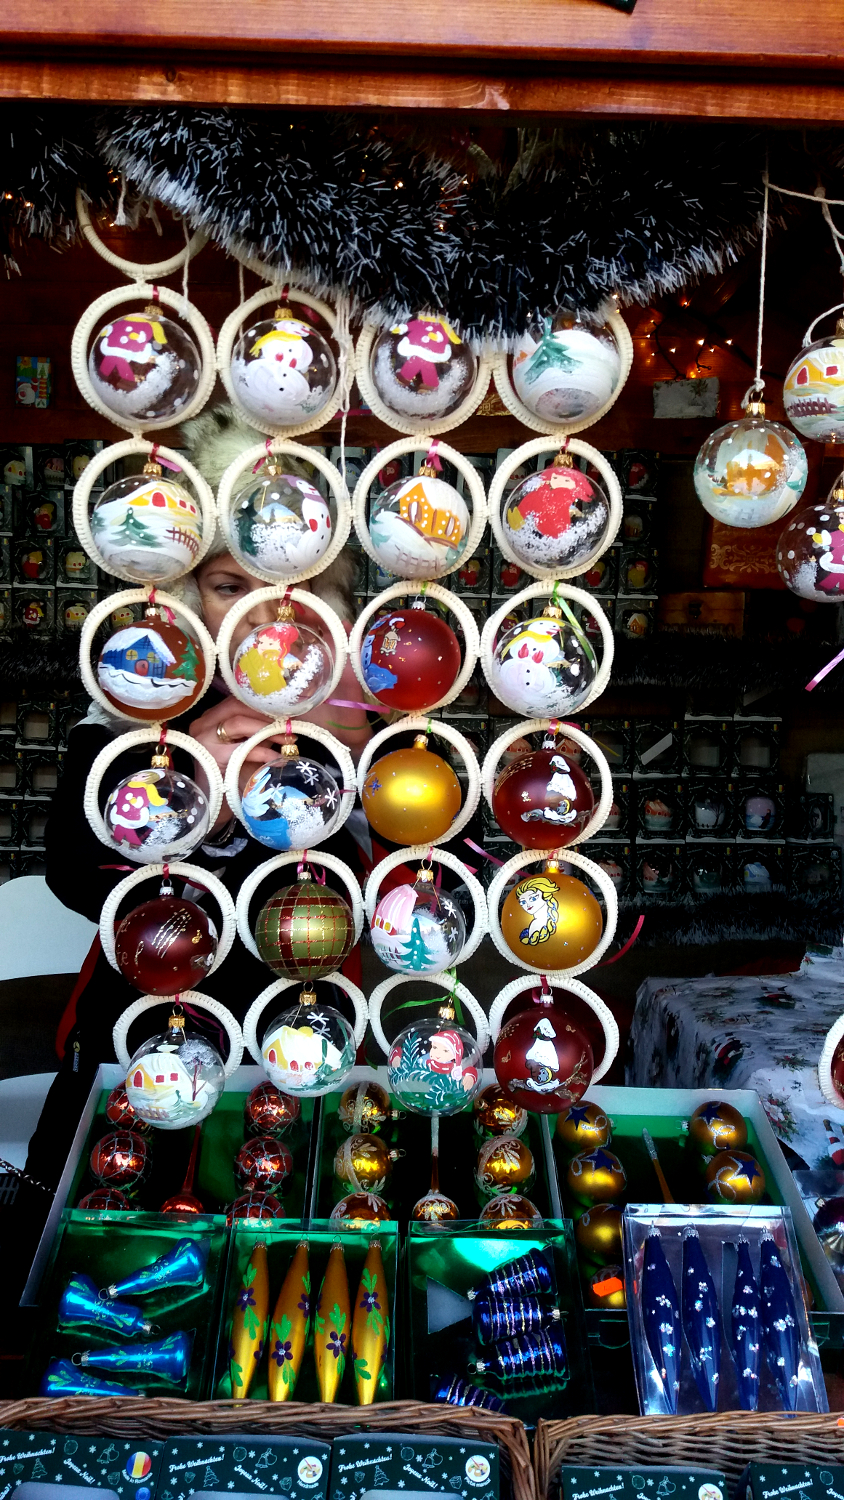 Bucharest Christmas Market - Christmas decorations